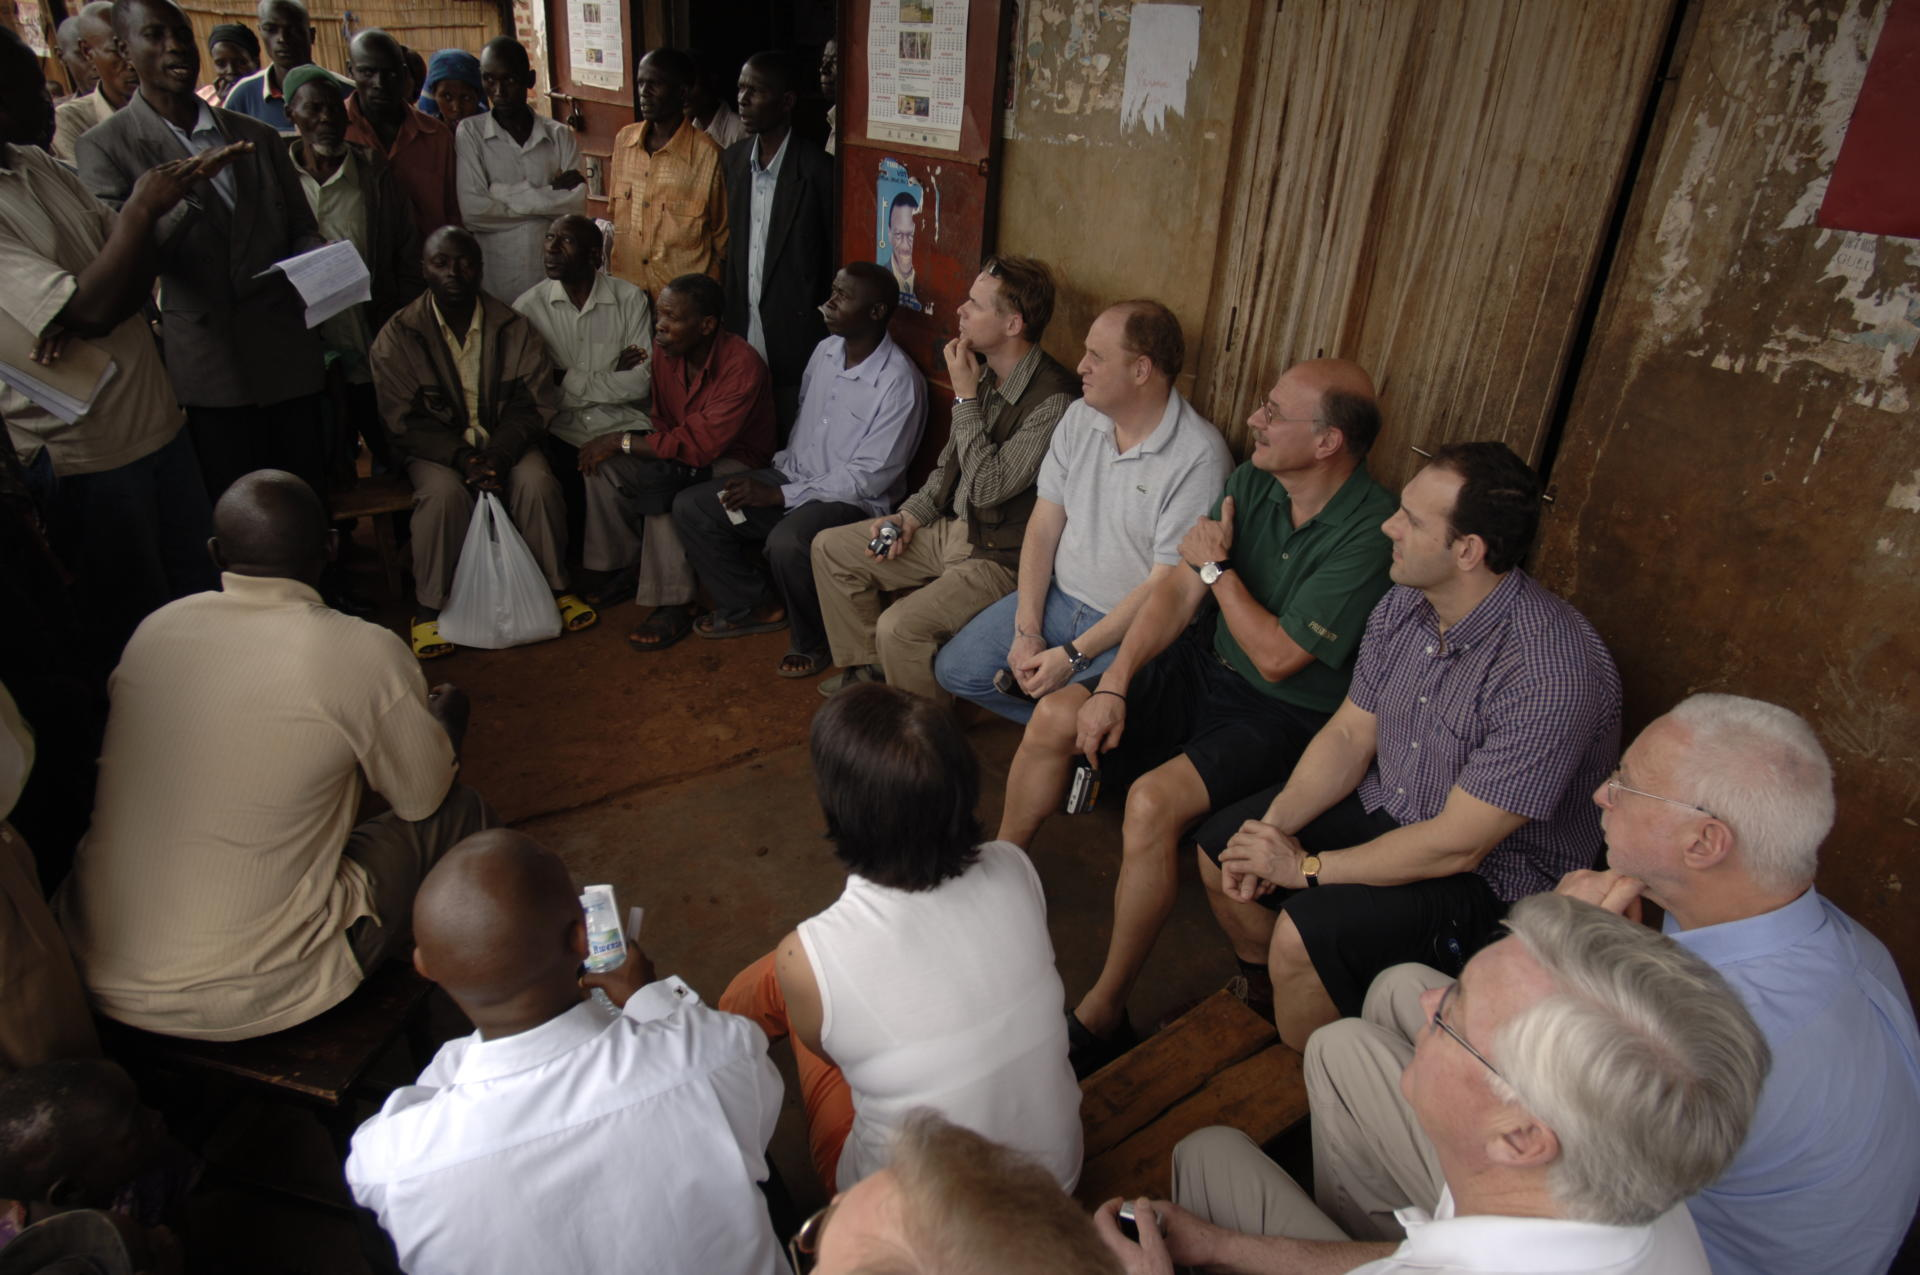 Discussing with coffee farmer organizations is important in coffee sustainability